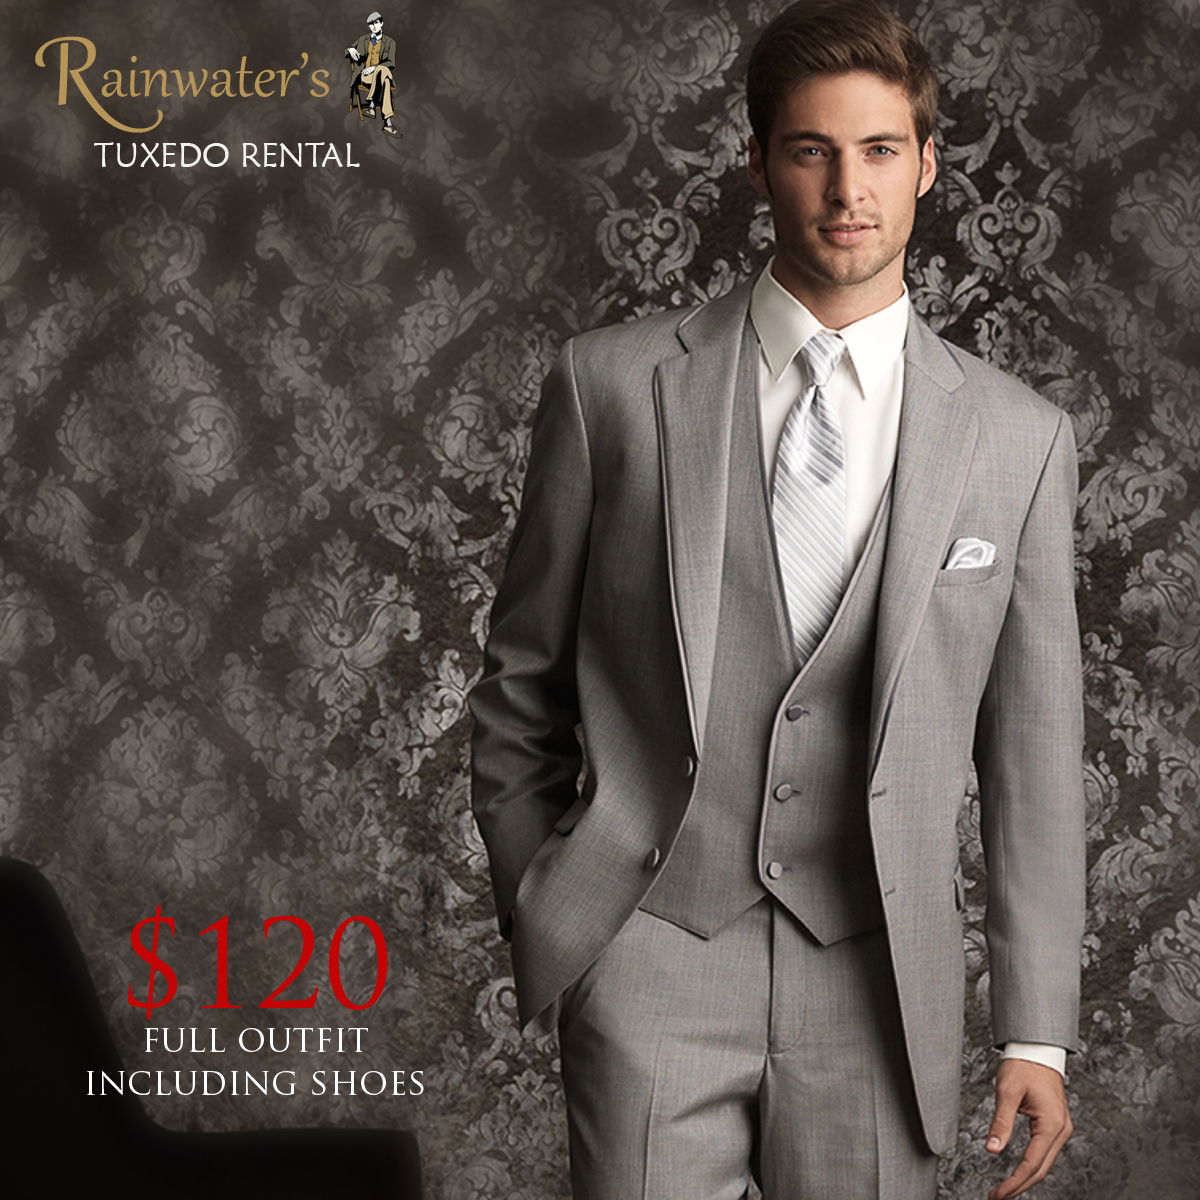 Wedding Tuxedo Rental – Be the Most Handsome Groom at the Best Price ...